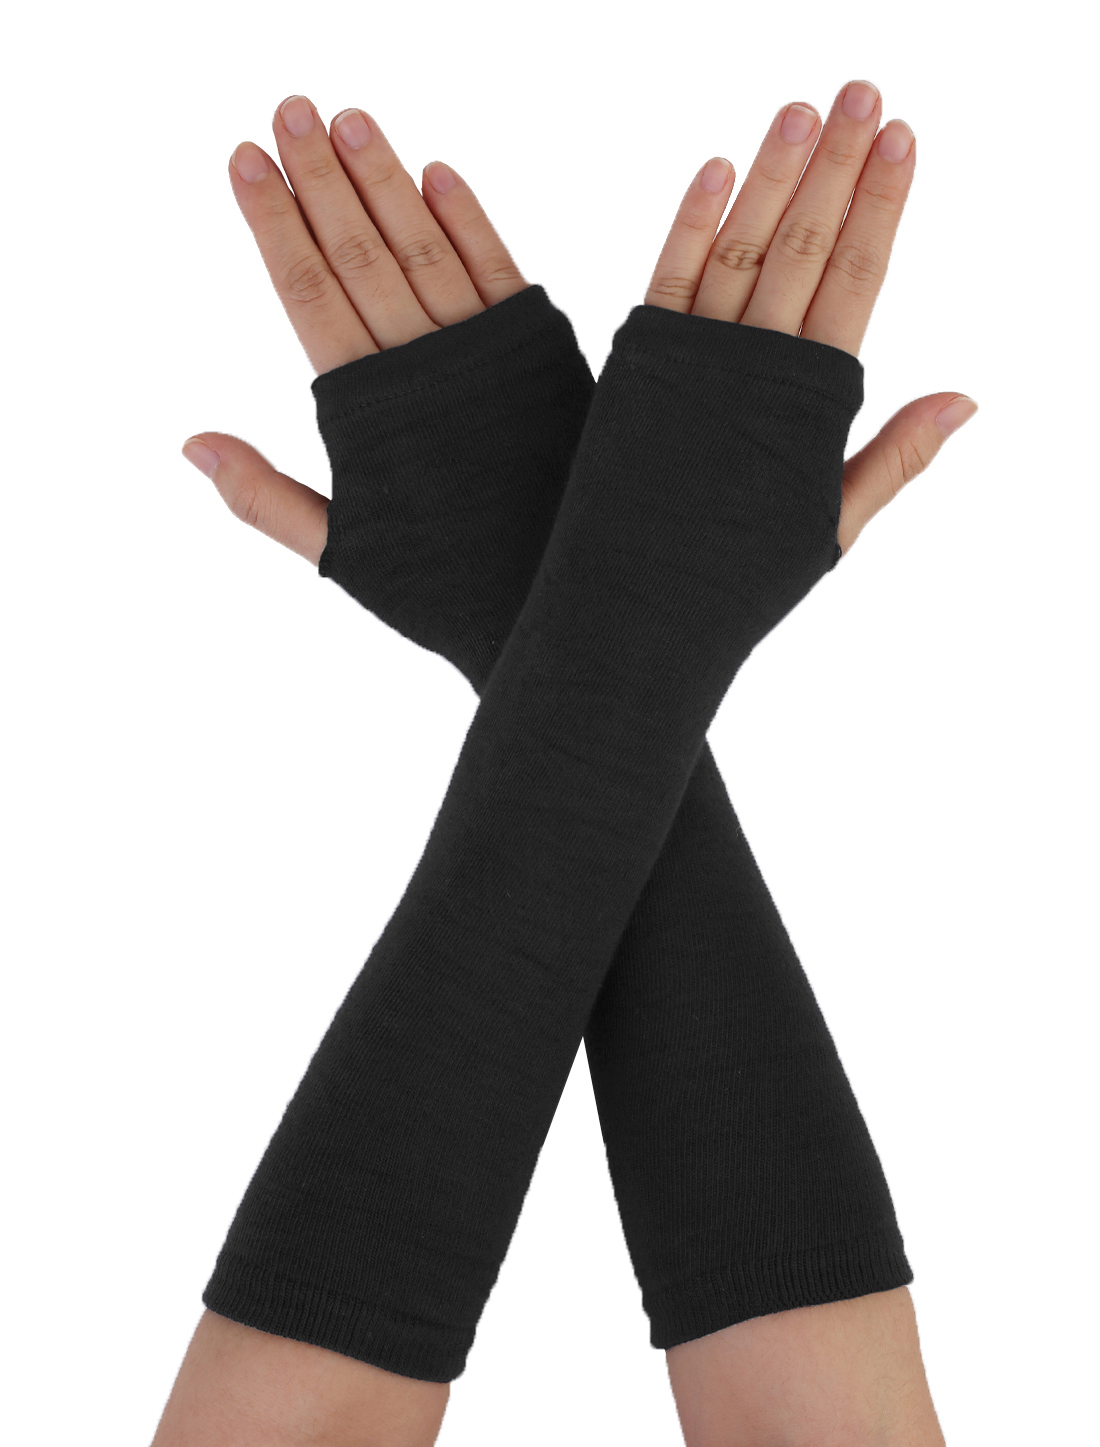 Gray Black Stretchy Thumbhole Fingerless Arm Gloves for Women